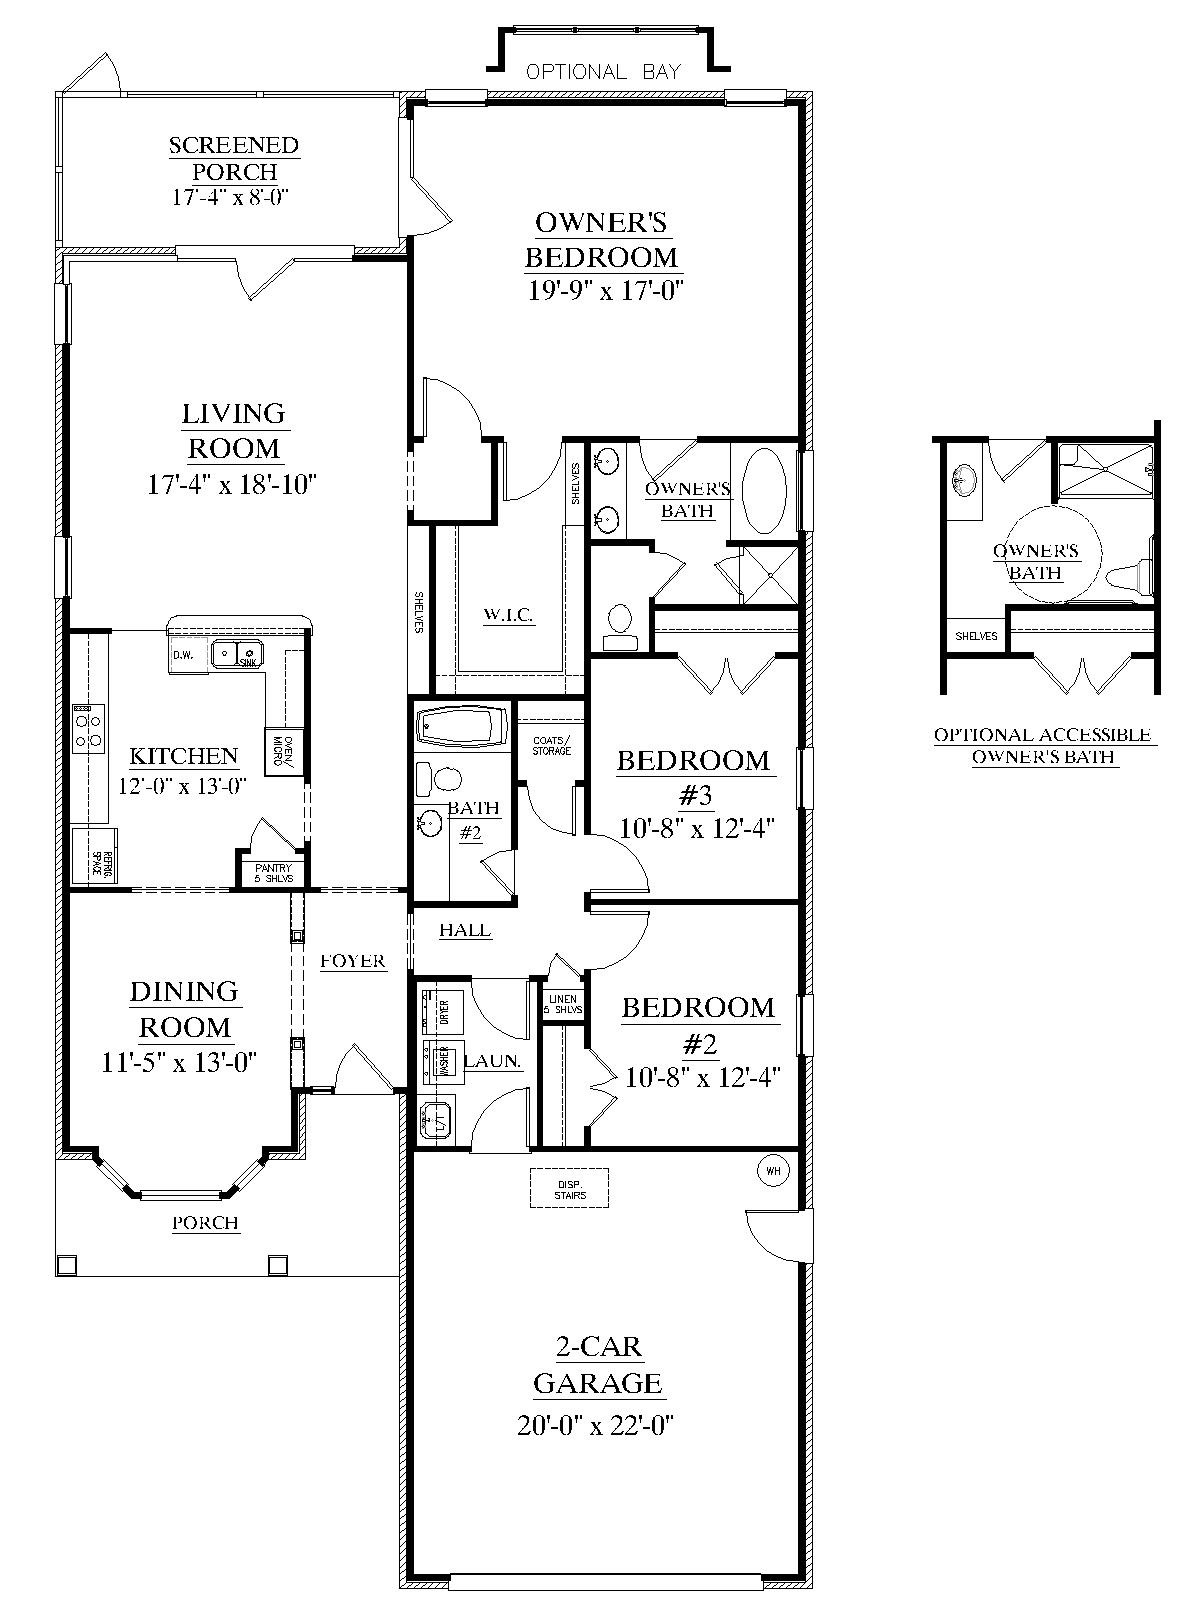 House Plan 1912 A The BROOKDALE A